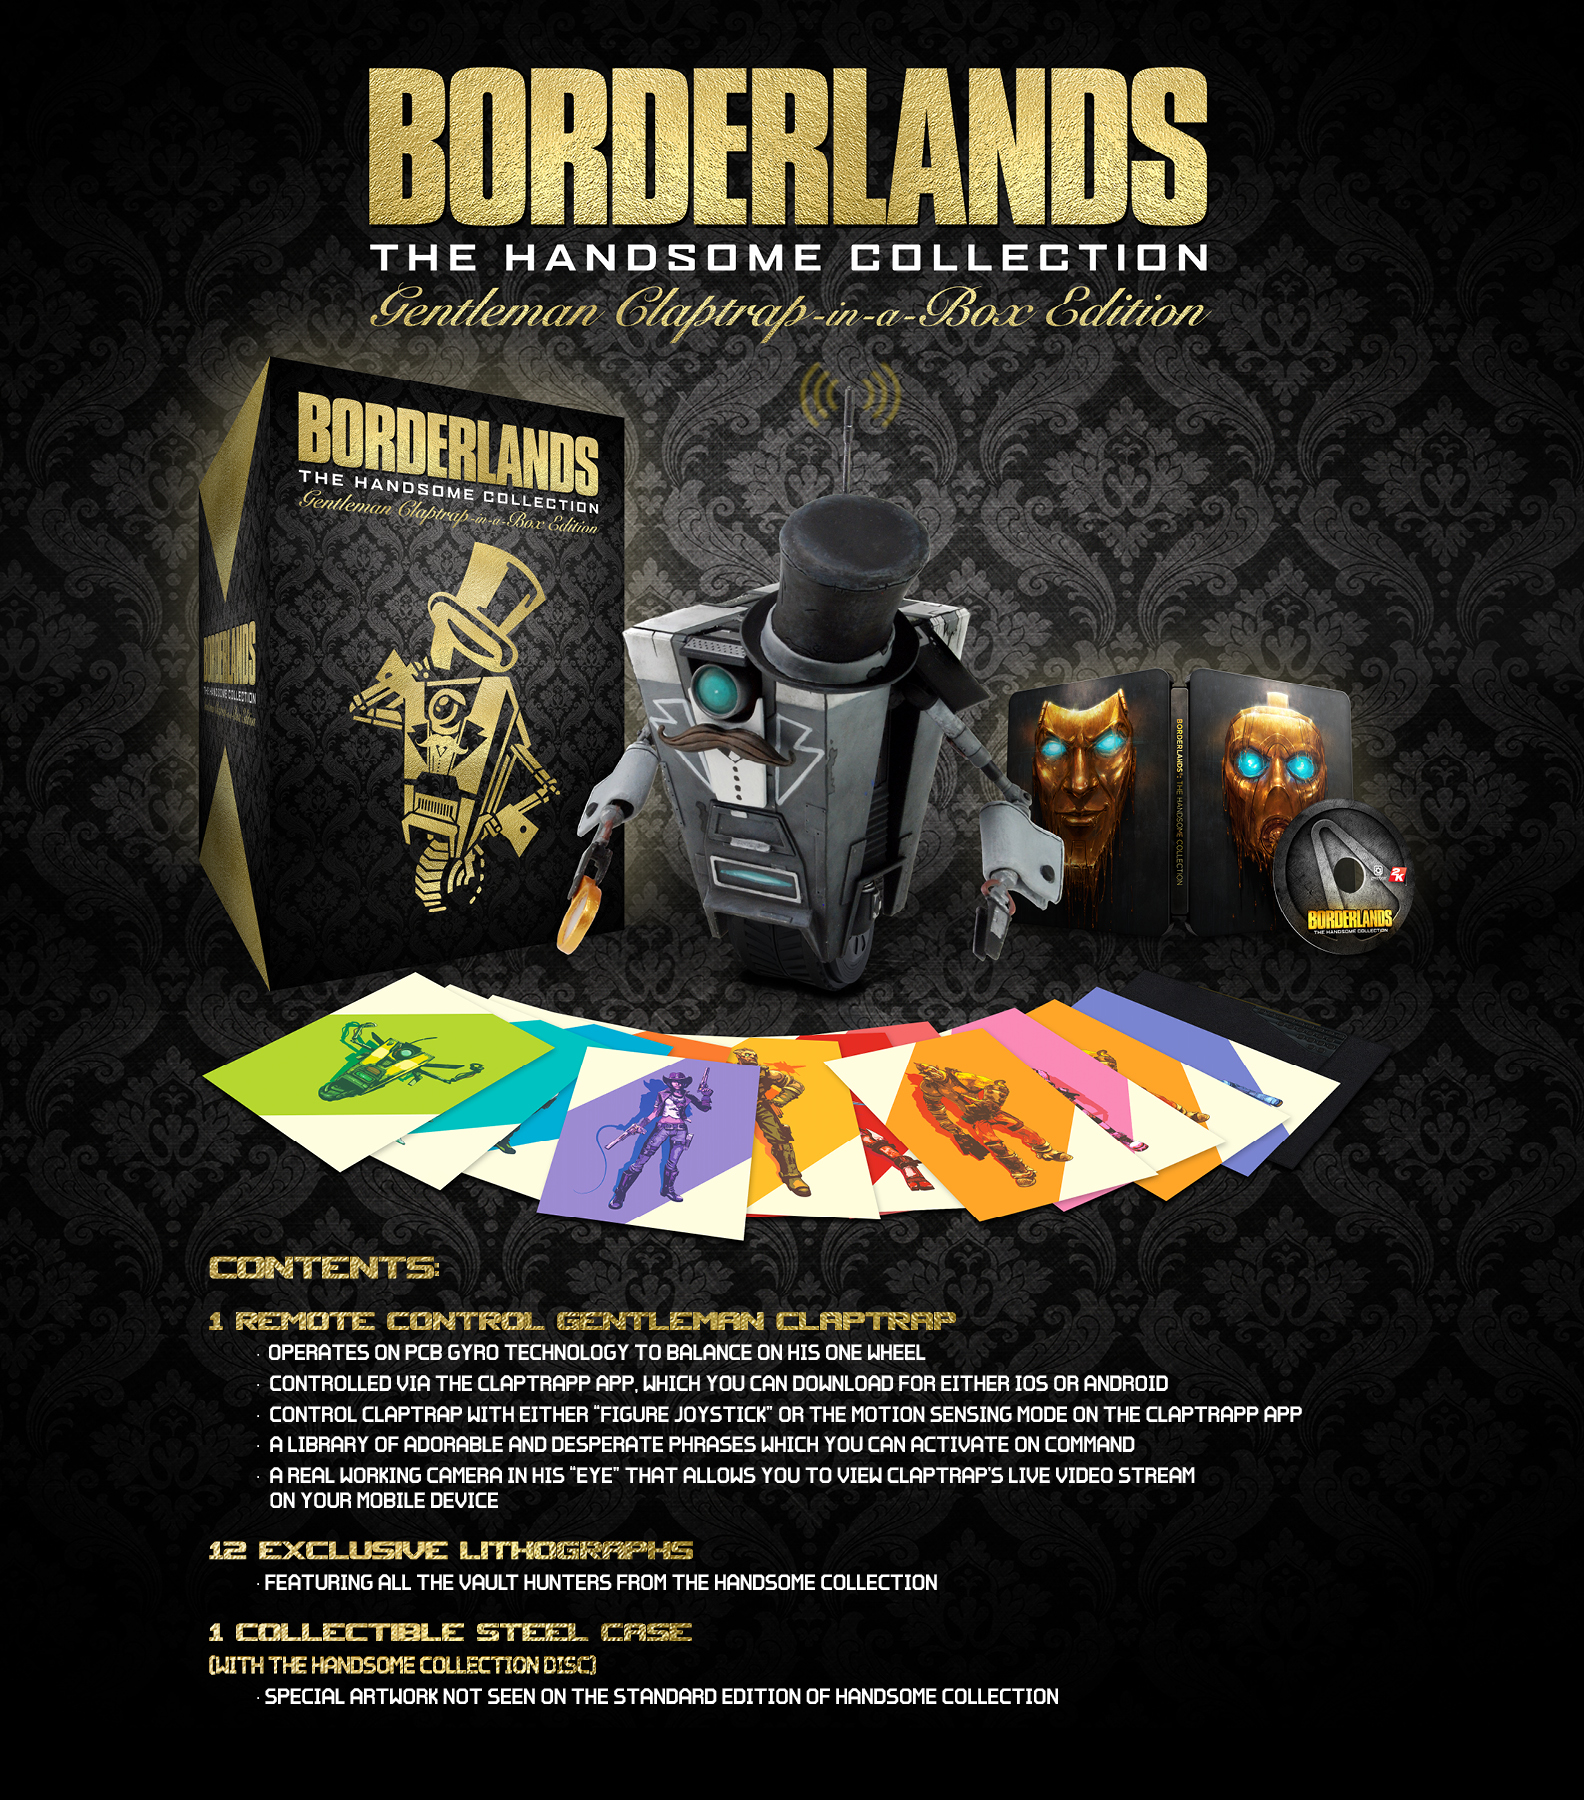 Borderlands: The Handsome Collection Gentleman Claptrap-in-a-Box